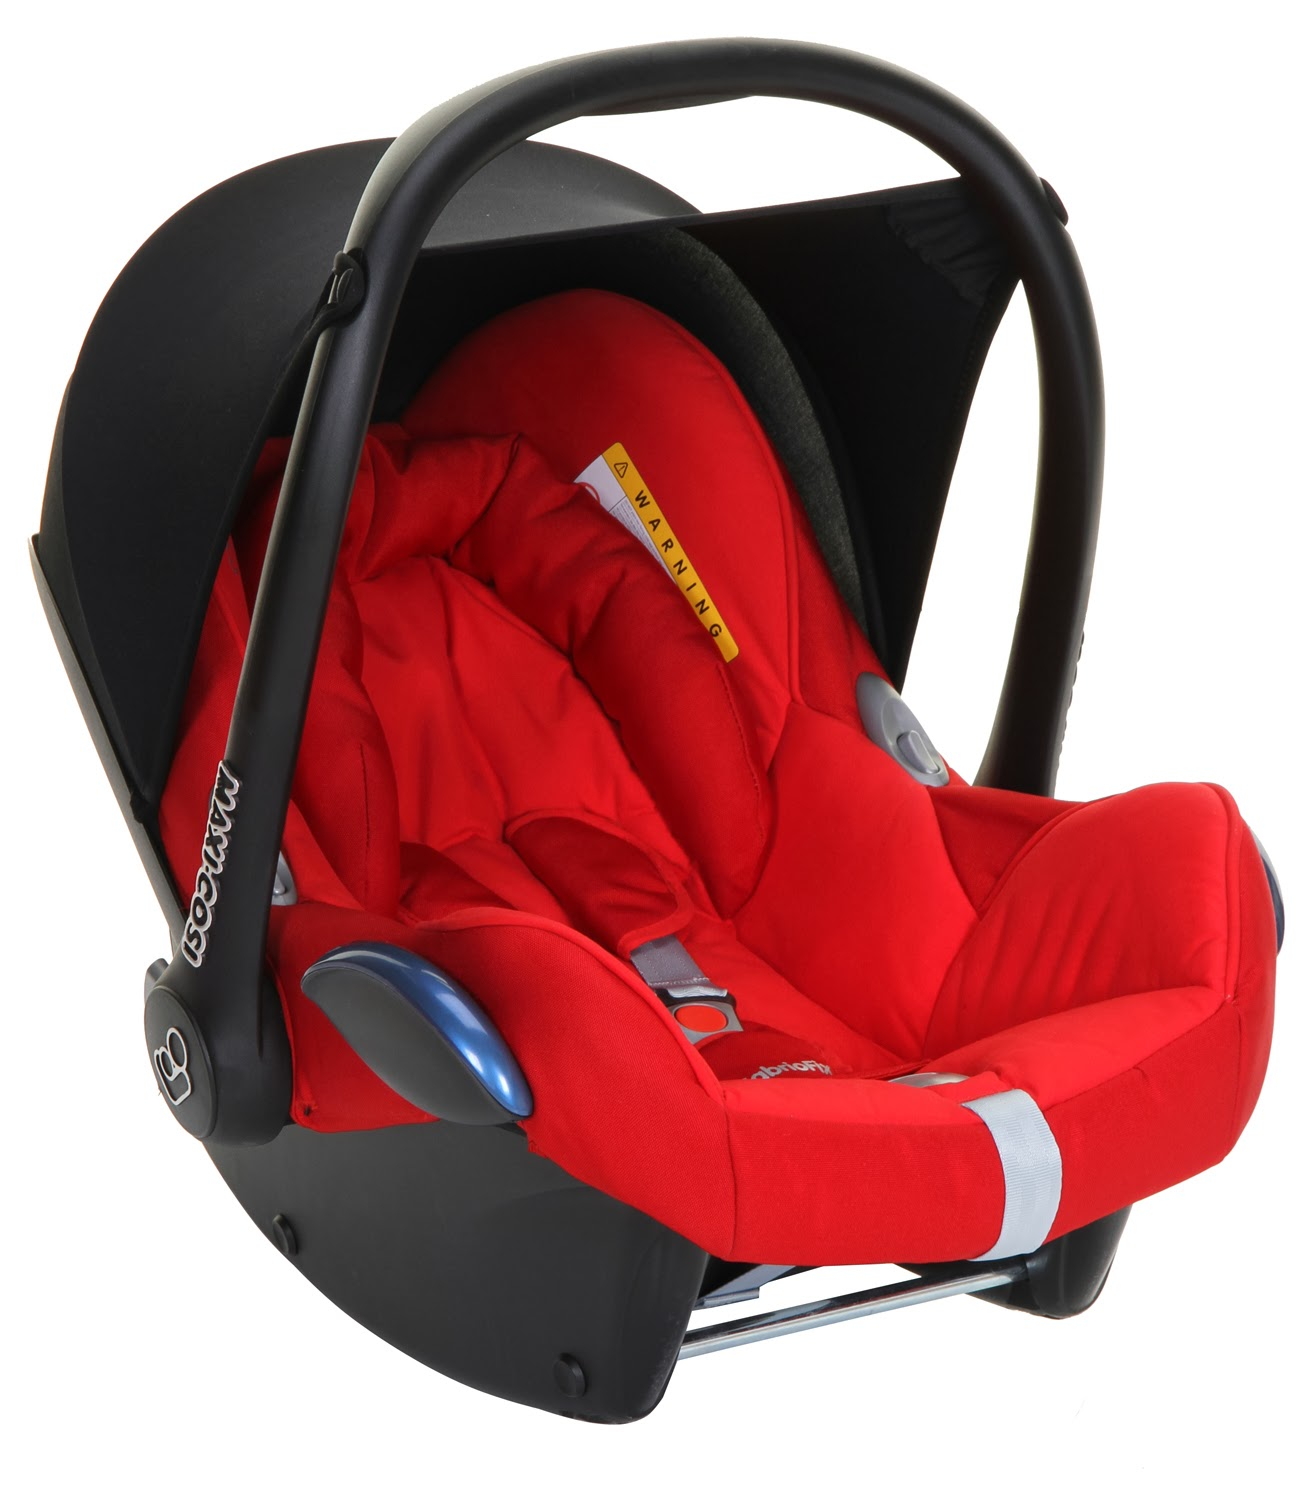 Nh kids collection hellokidzshop maxi cosi car seat for Housse maxi cosi cabriofix